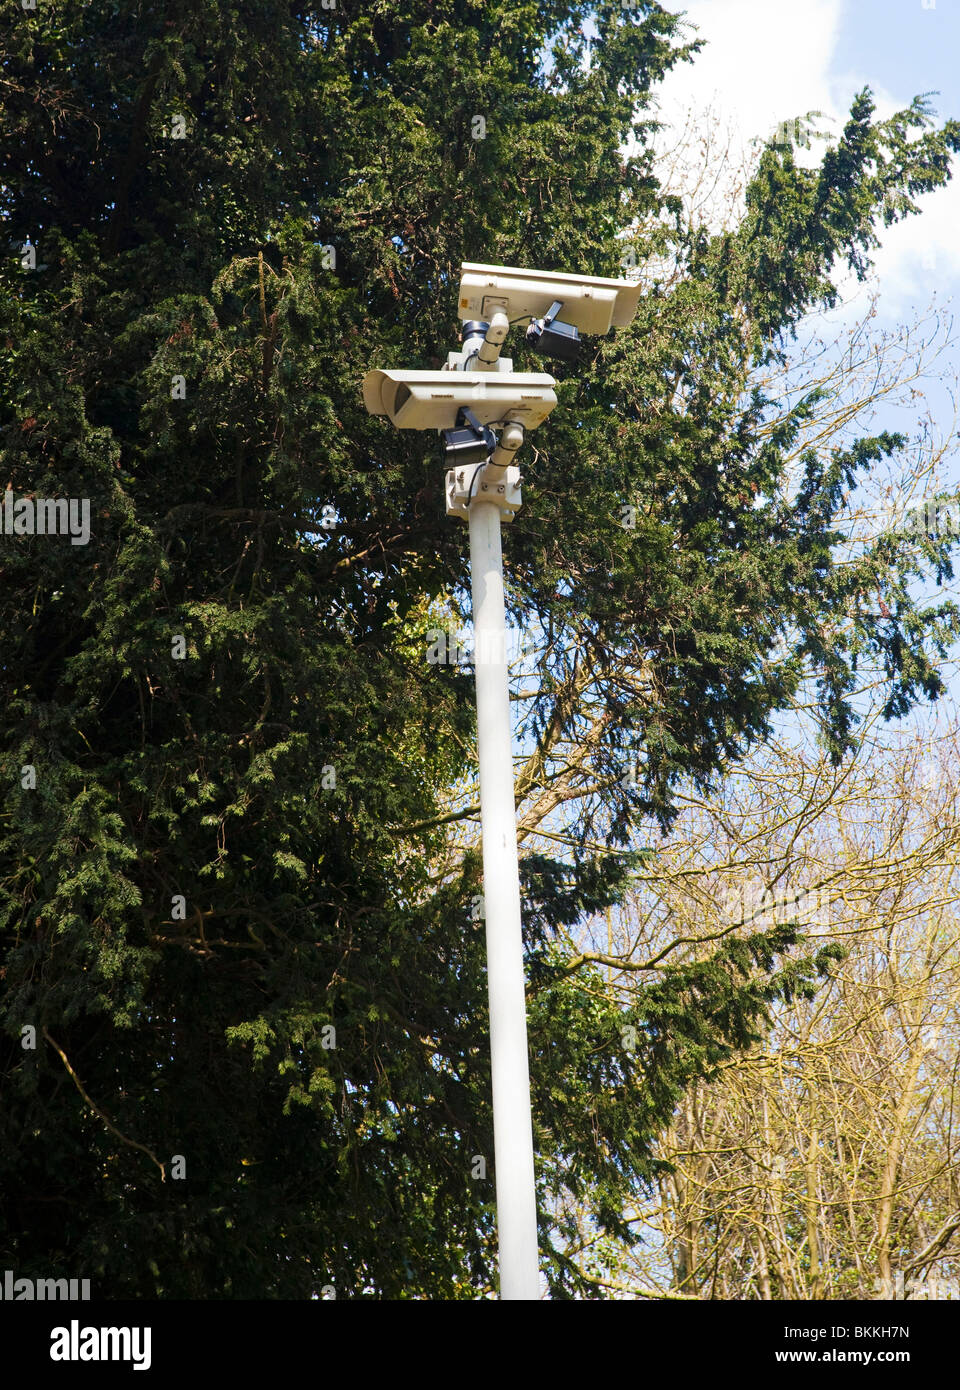 security CCTV cameras on a pole - Stock Image